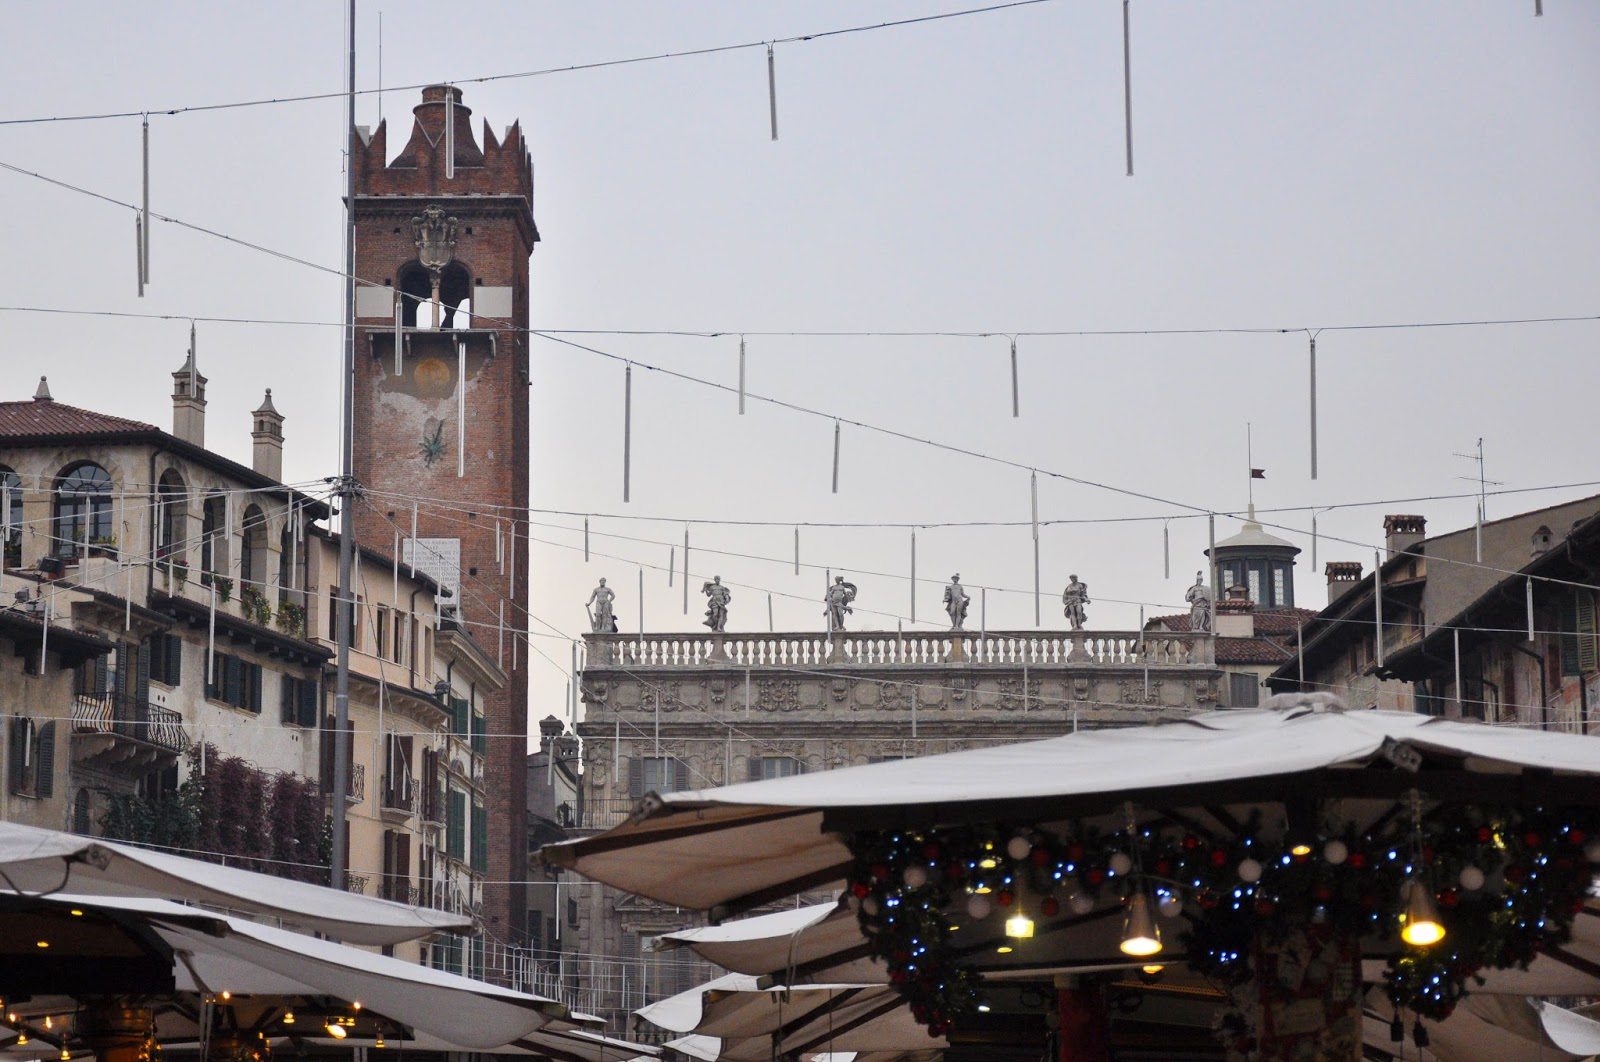 Christmas stalls and decorations, Piazza delle Erbe, Verona, Italy